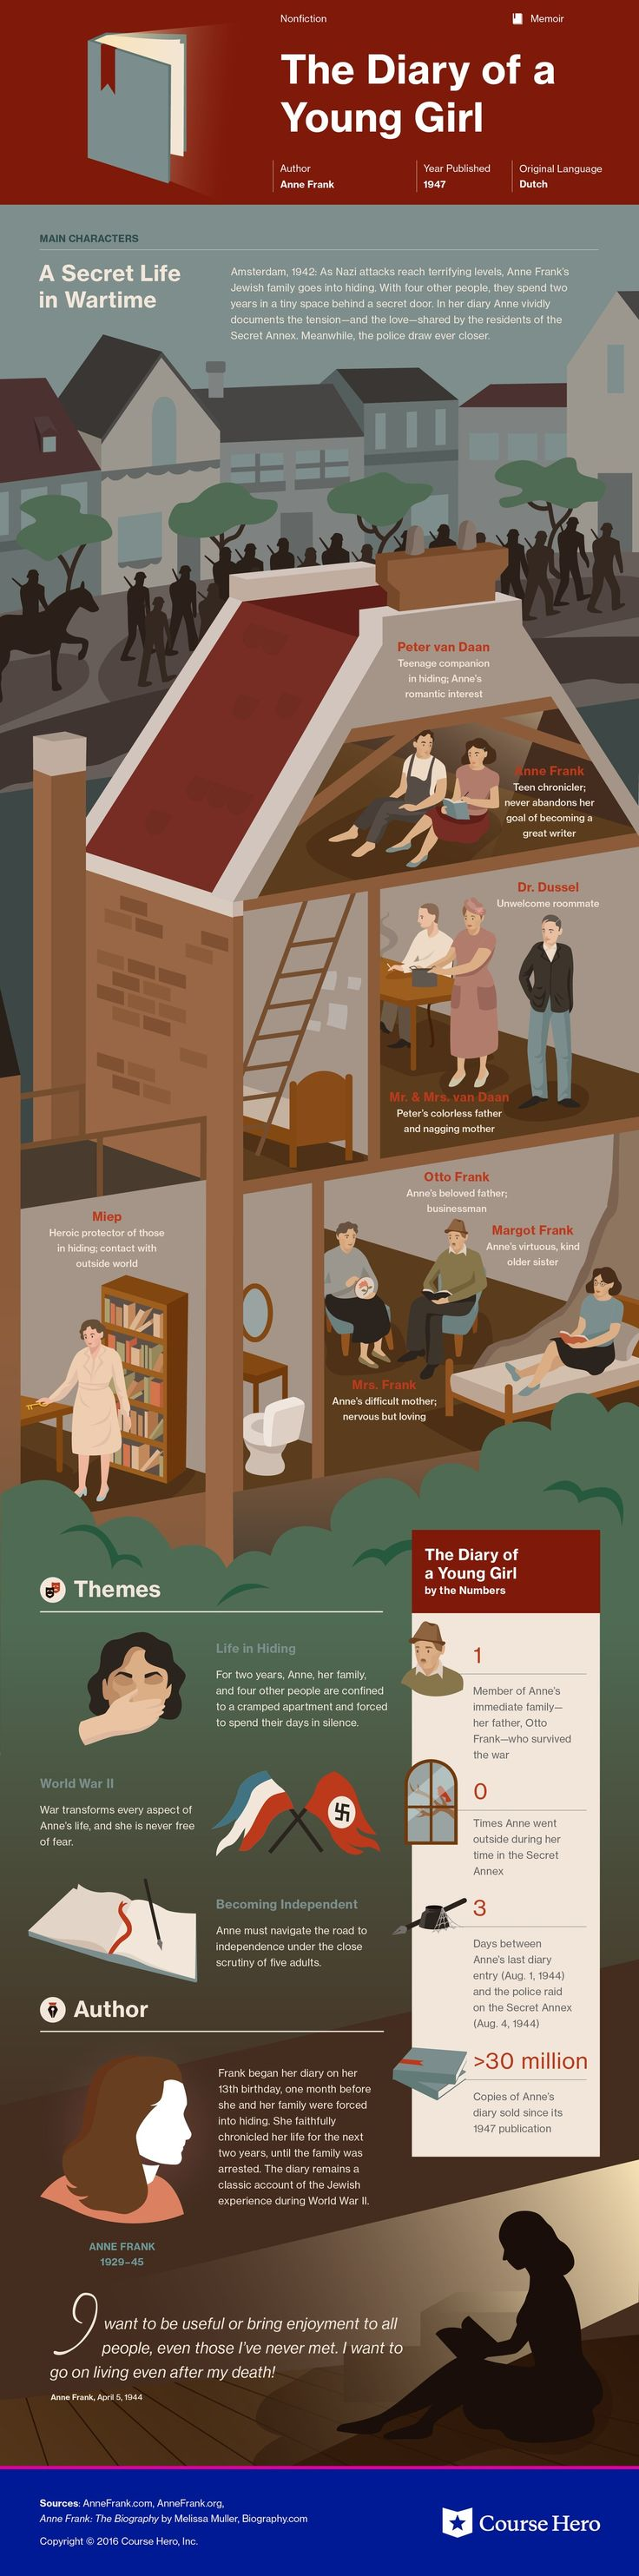 The Diary of a Young Girl infographic